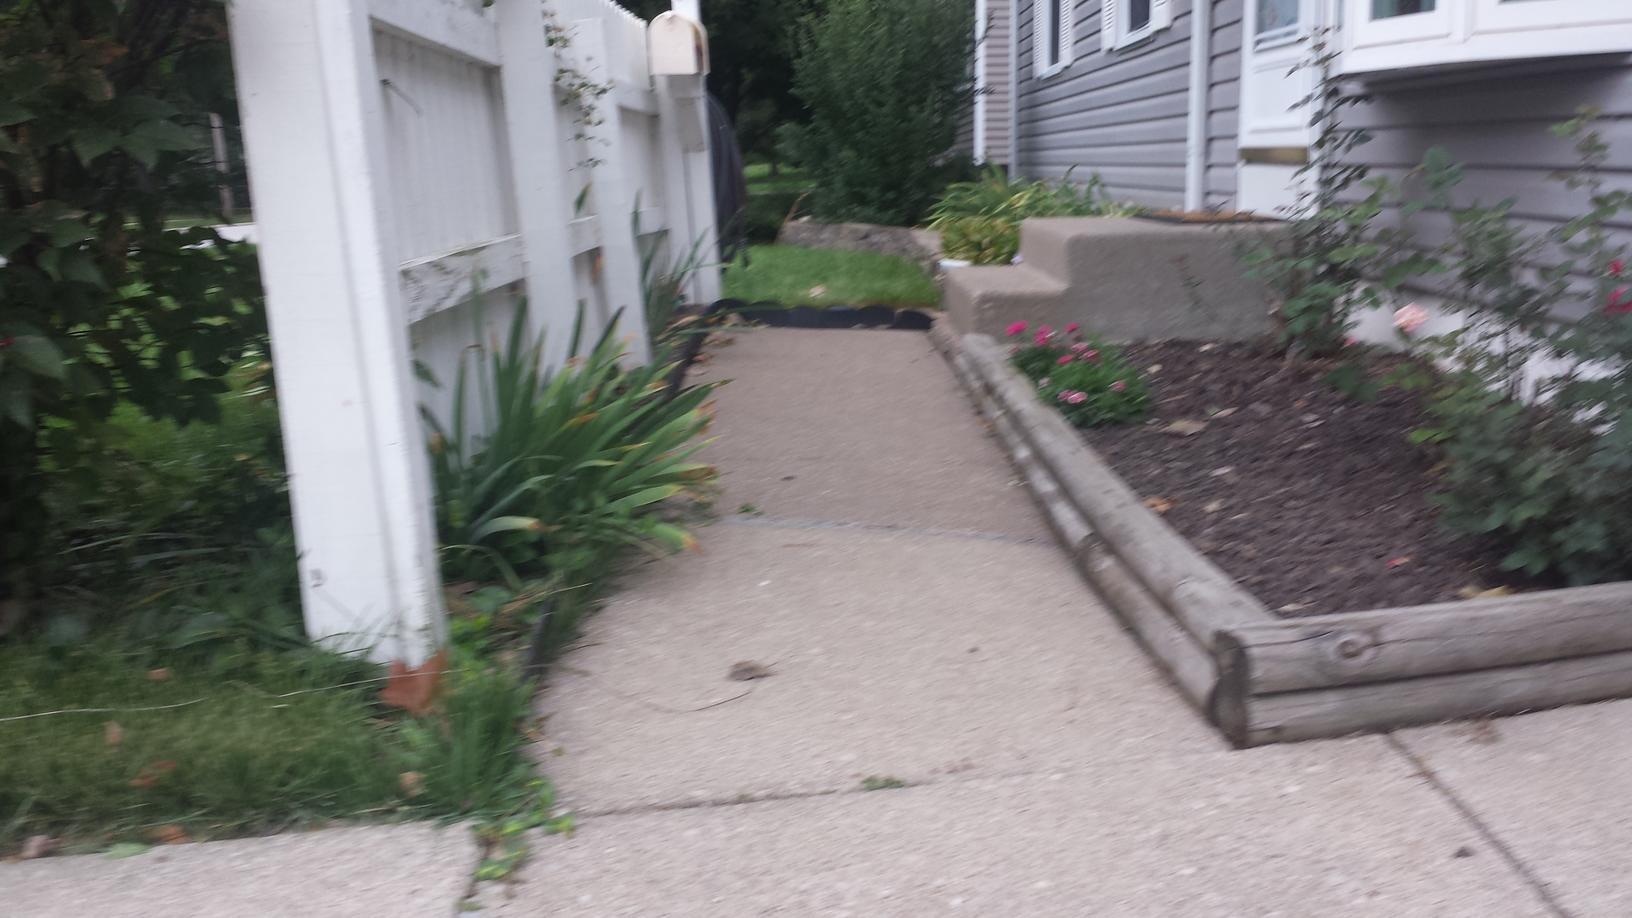 The cracking and sinking sidewalk is a trip hazard and and eye sore.